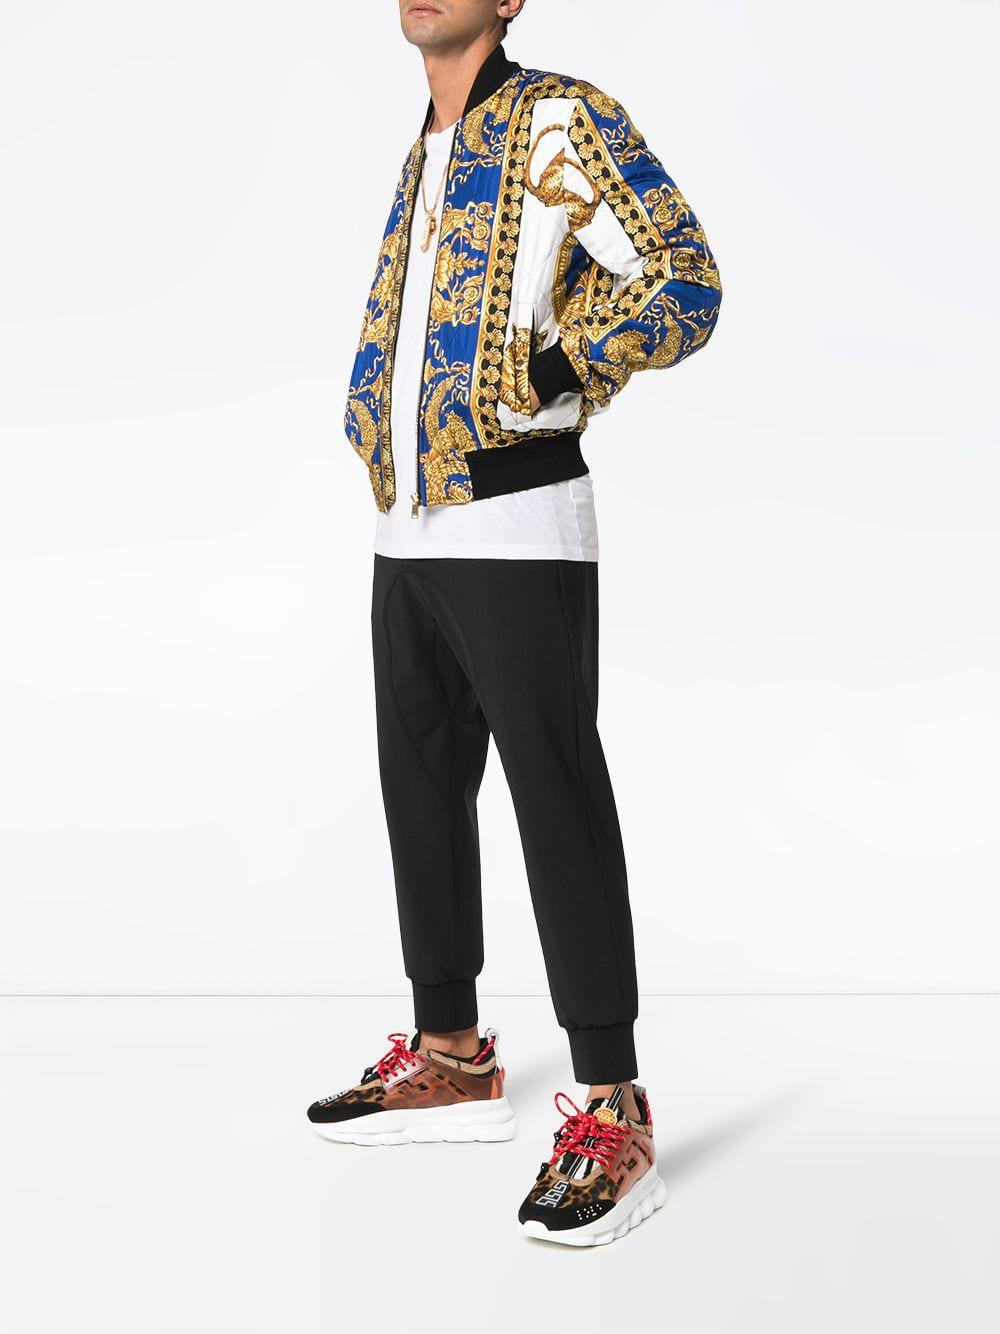 Lyst Versace Barocco Print Bomber Jacket In Blue For Men